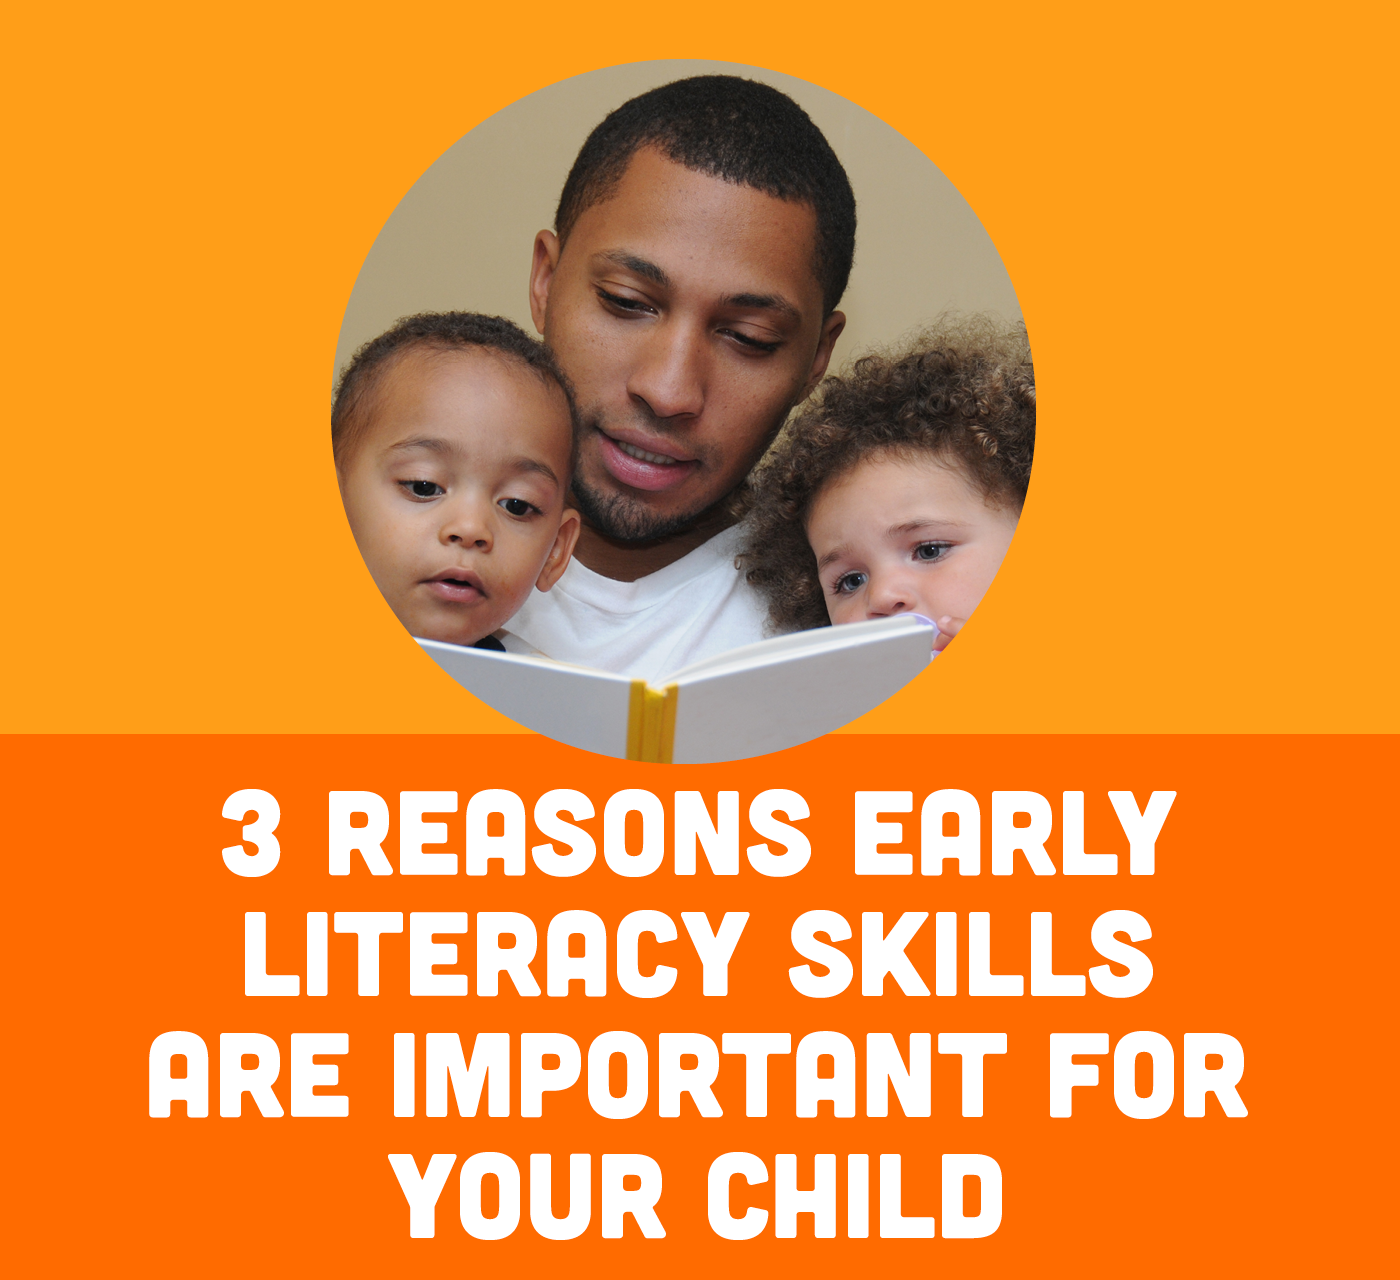 3 Reasons Early Literacy Skills Are Important For Your Child